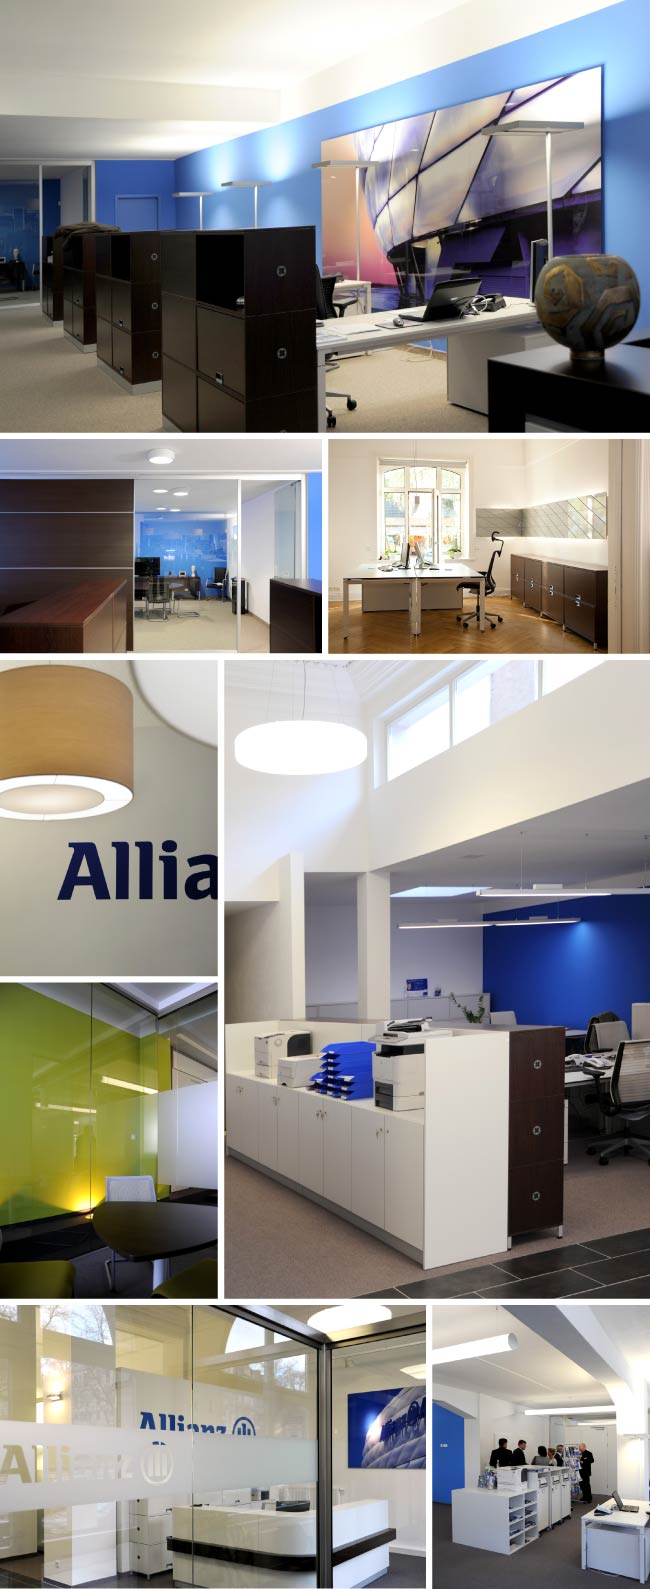 Allianz Service Center Impressions 2